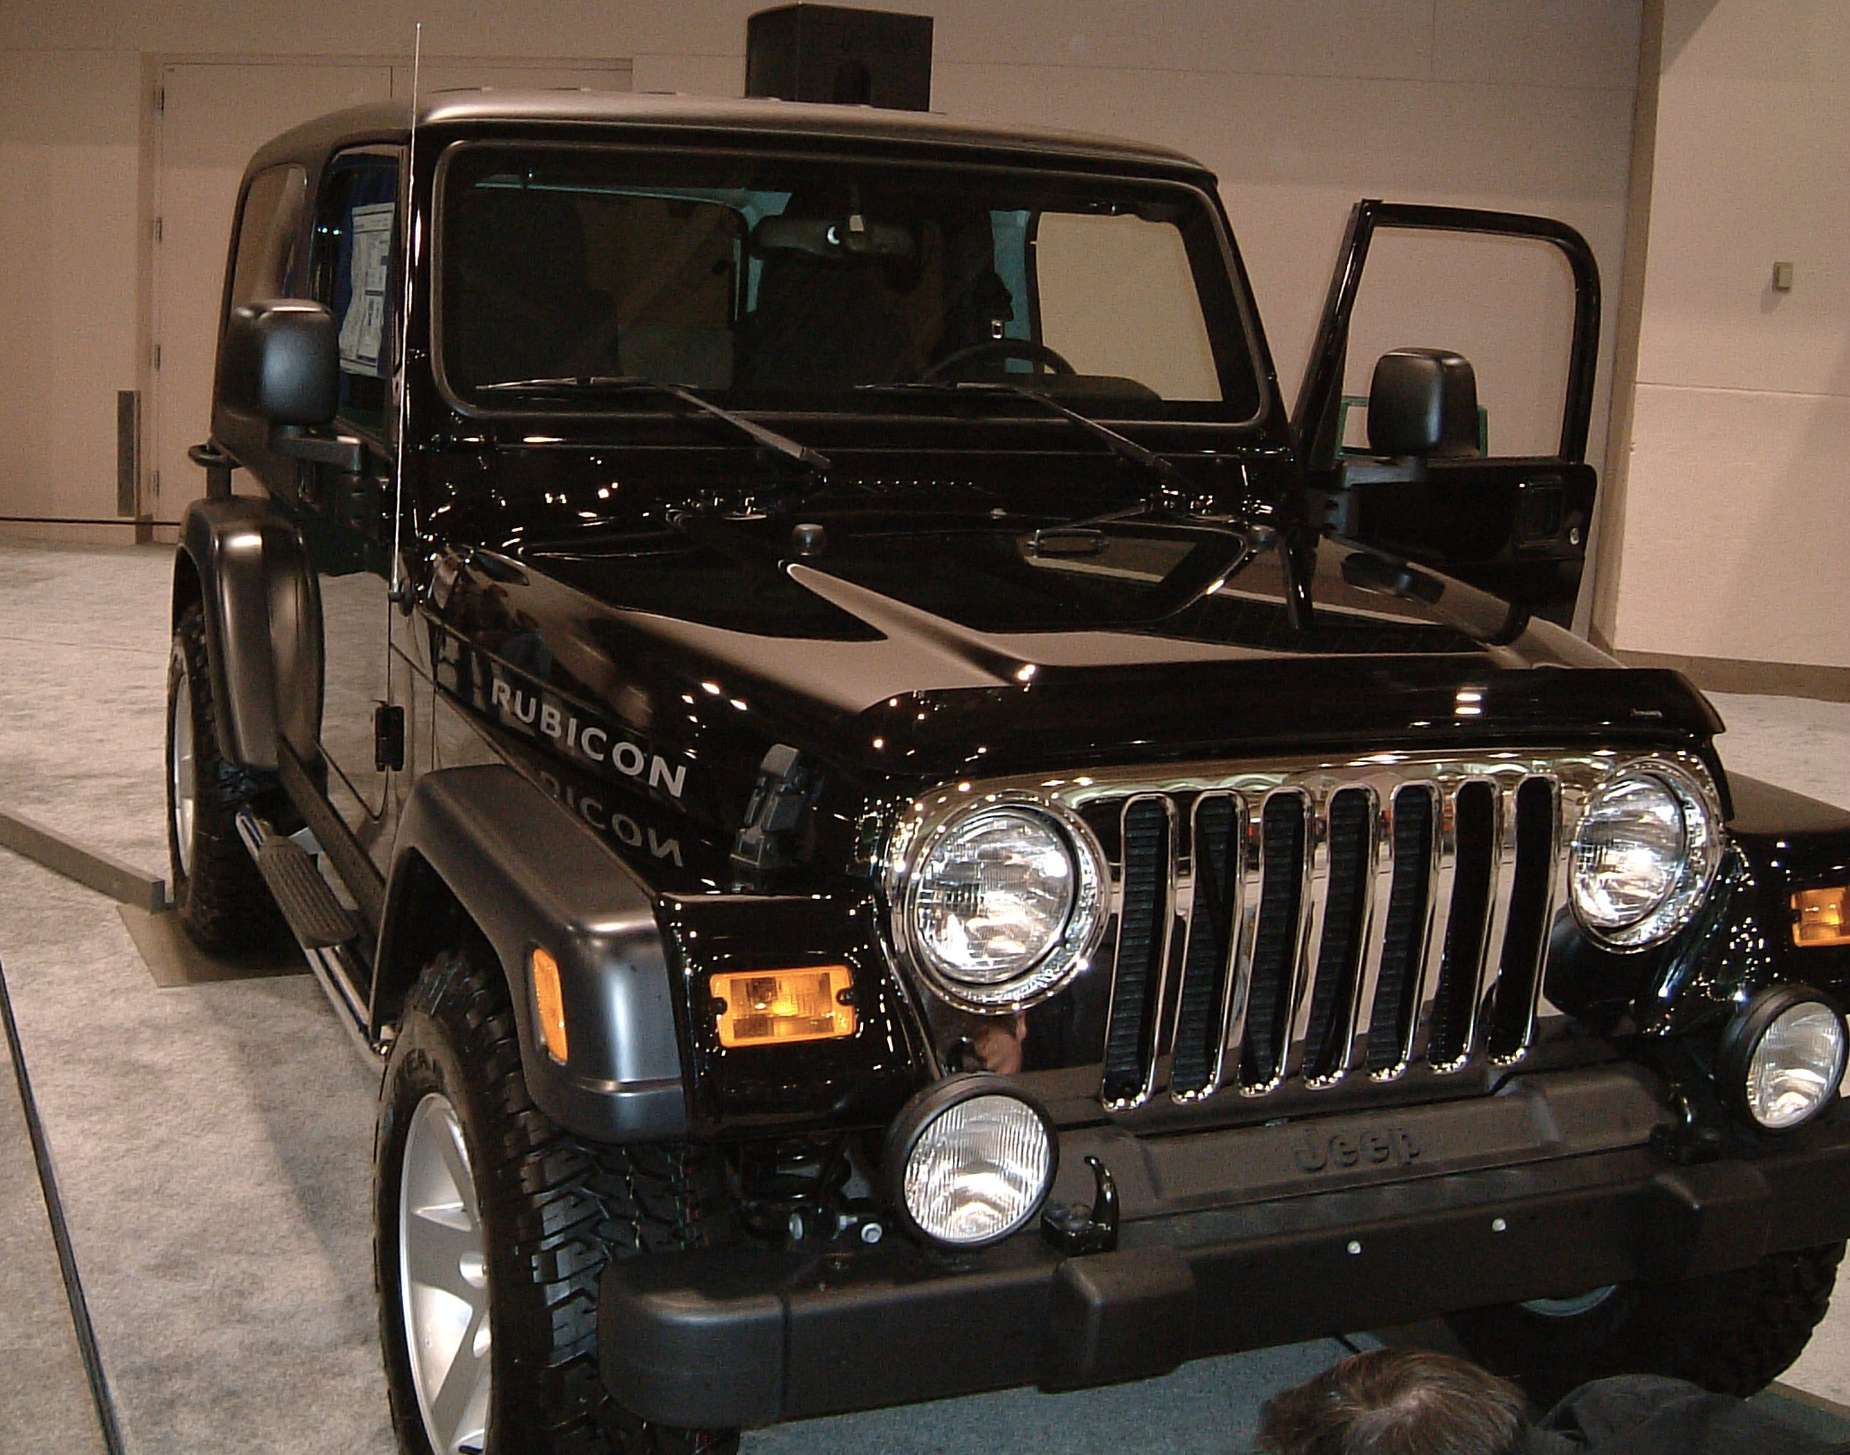 Jeep Wrangler Rubicon #7493899